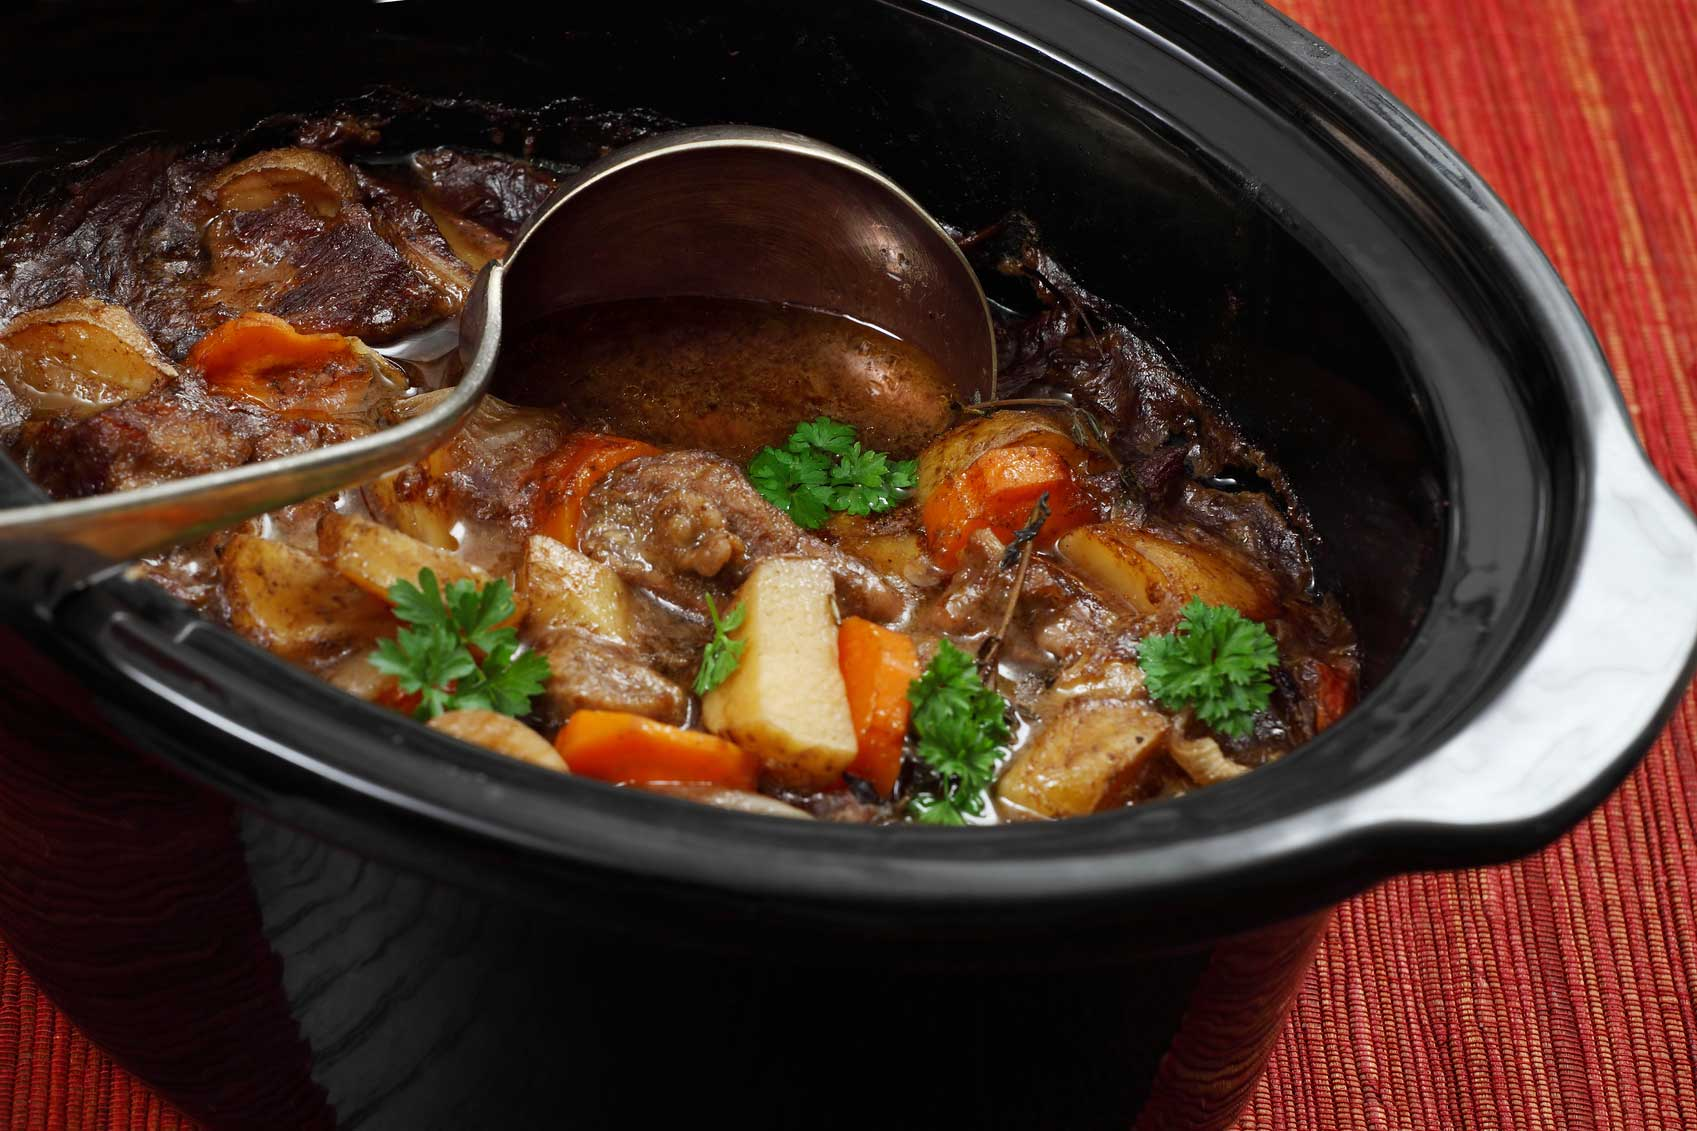 Stirring slow cooker contents